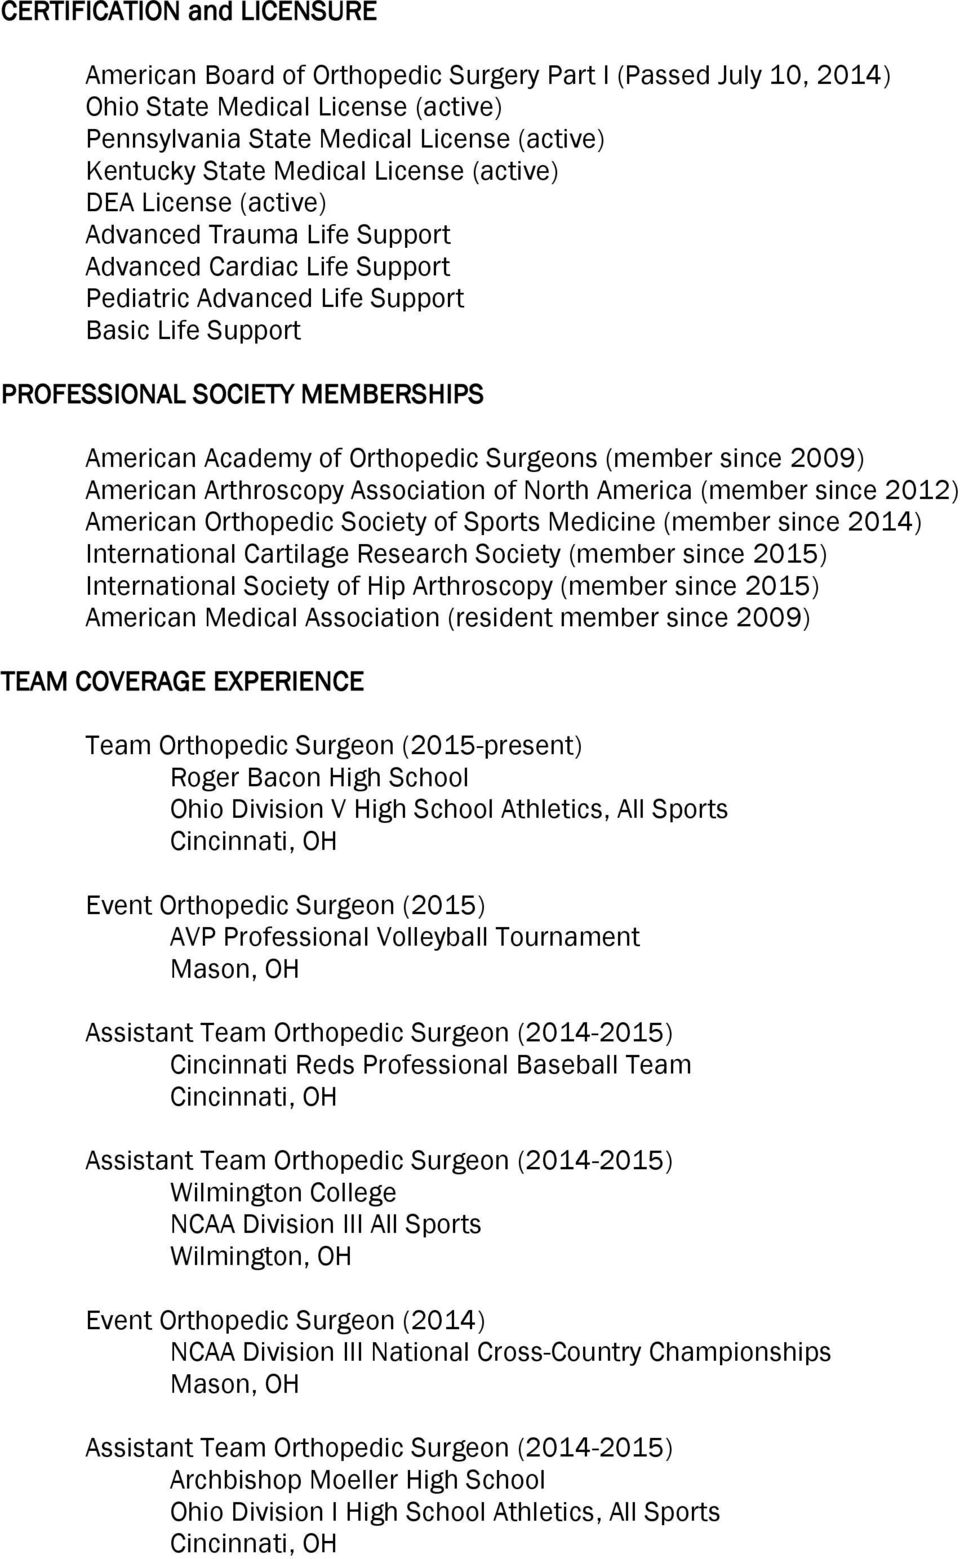 of Orthopedic Surgeons (member since 2009) American Arthroscopy Association of North America (member since 2012) American Orthopedic Society of Sports Medicine (member since 2014) International